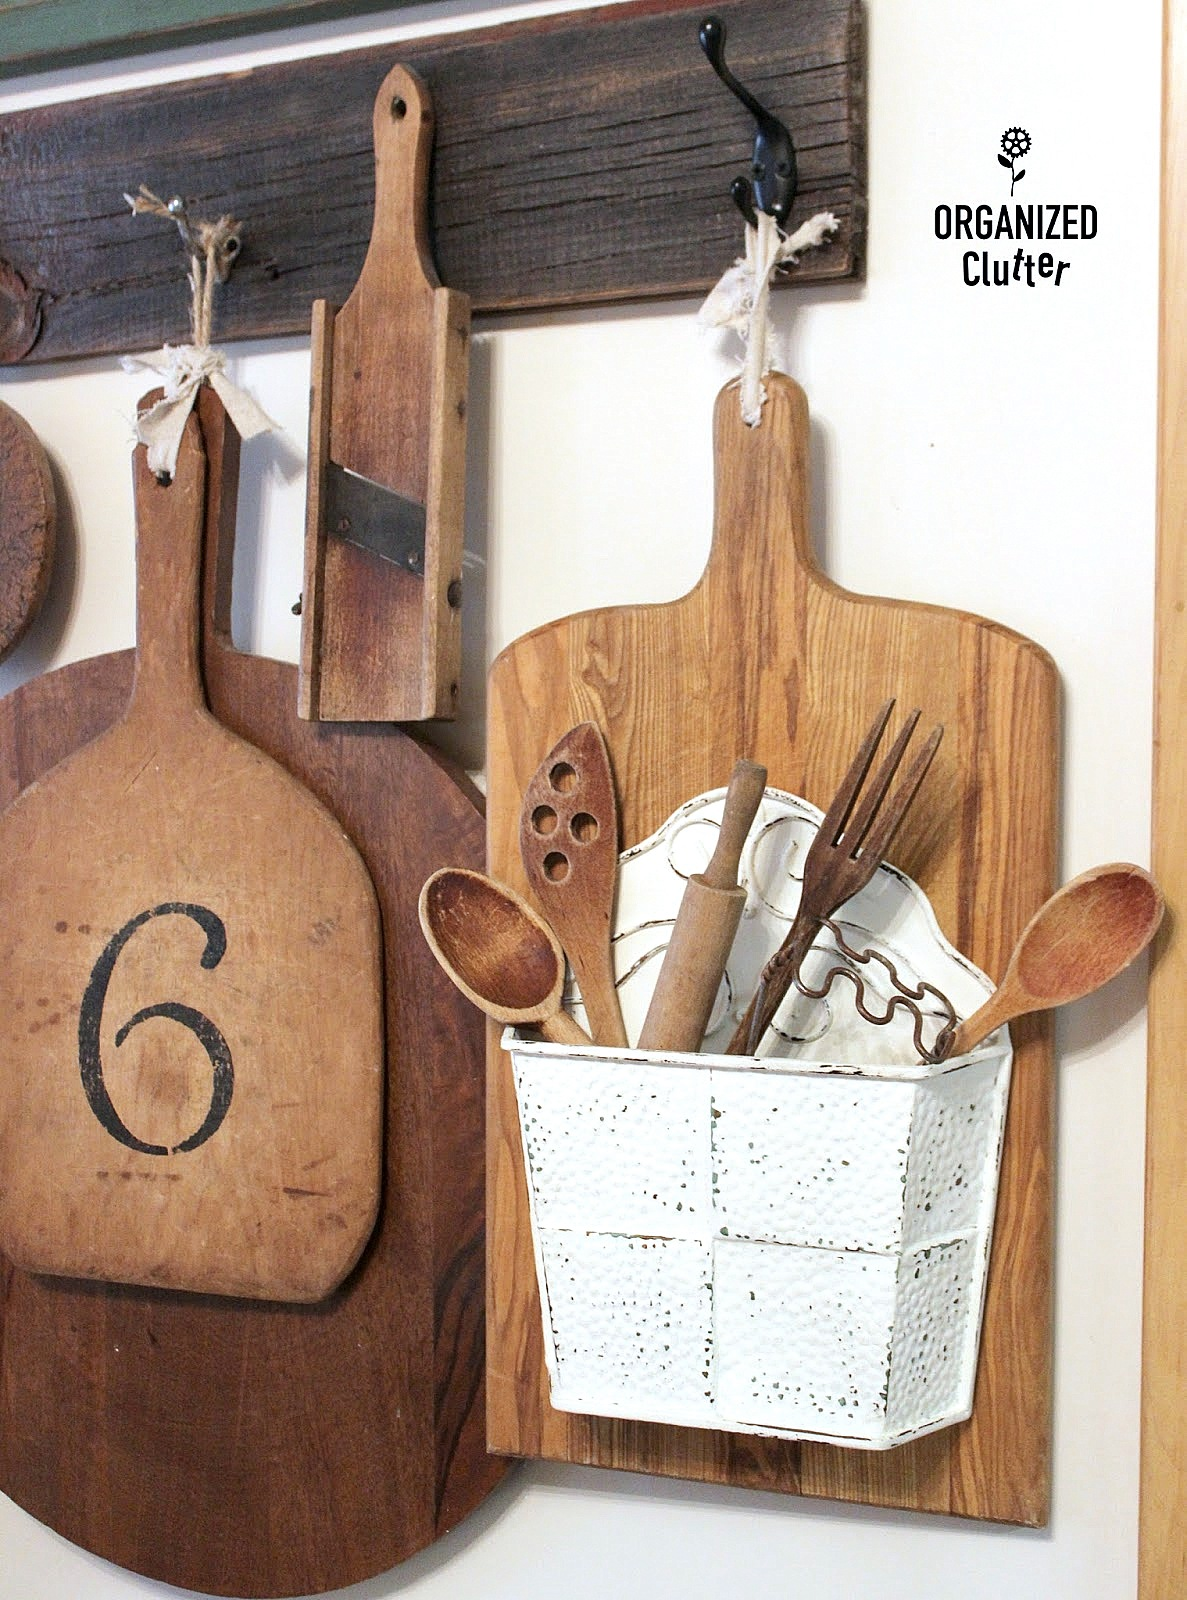 Repurposed cutting board wall pocket decor, by Organized Clutter, featured on Funky Junk Interiors